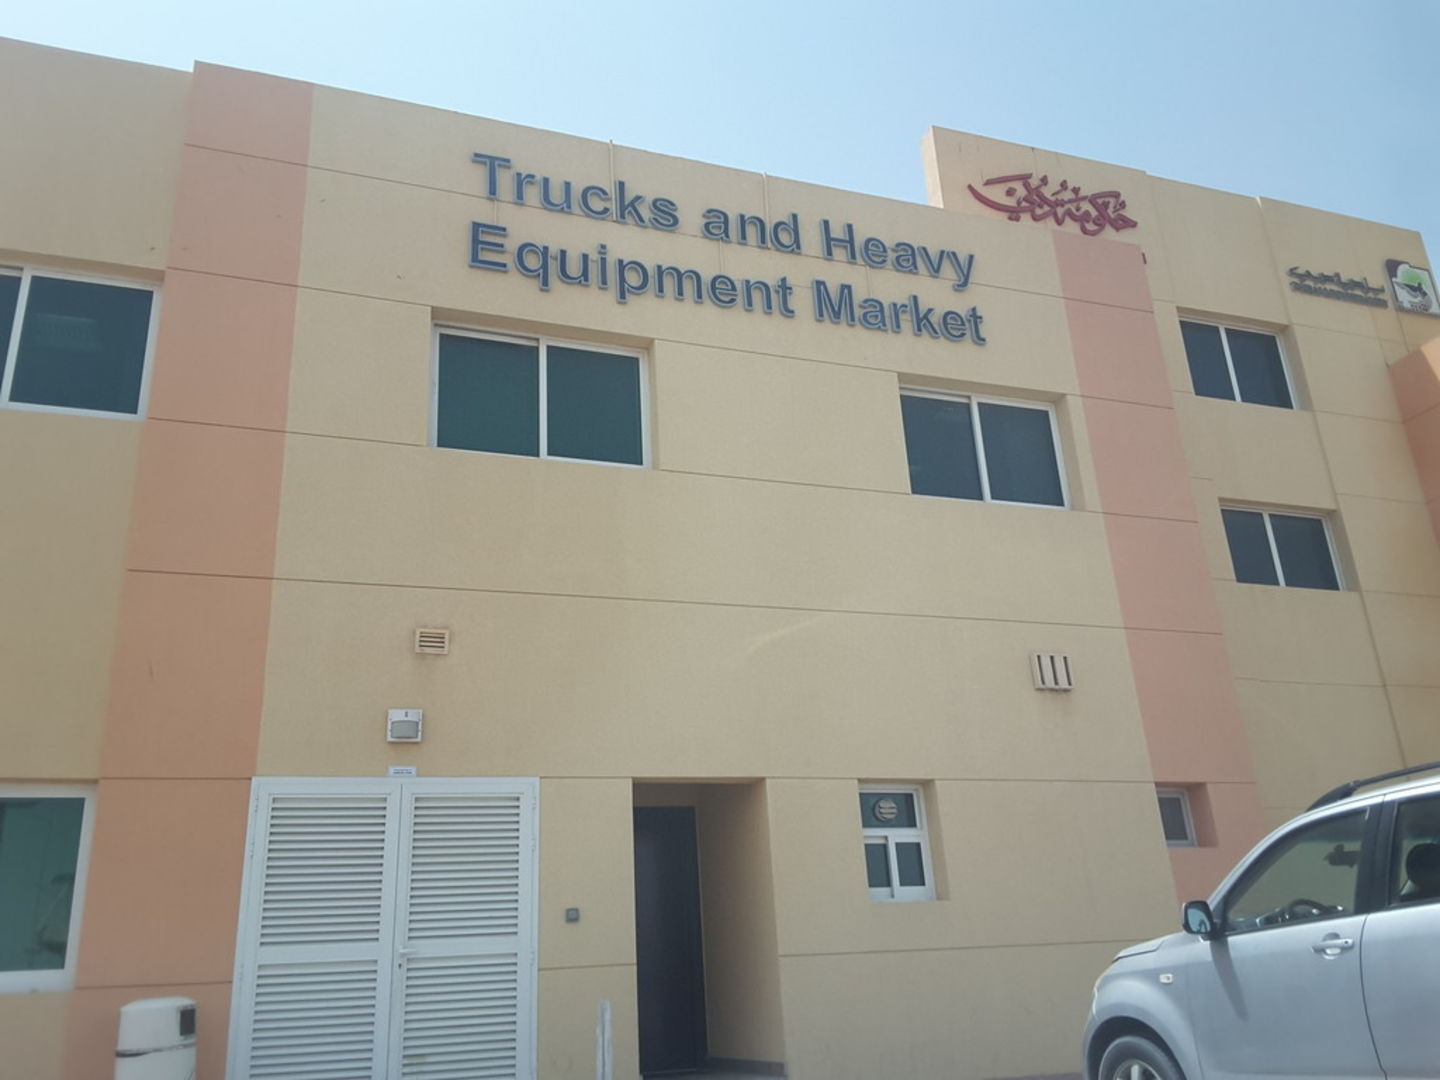 HiDubai-business-trucks-and-heavy-equipment-market-transport-vehicle-services-heavy-vehicles-rentals-dubai-outsource-zone-al-rowaiyah-3-dubai-2